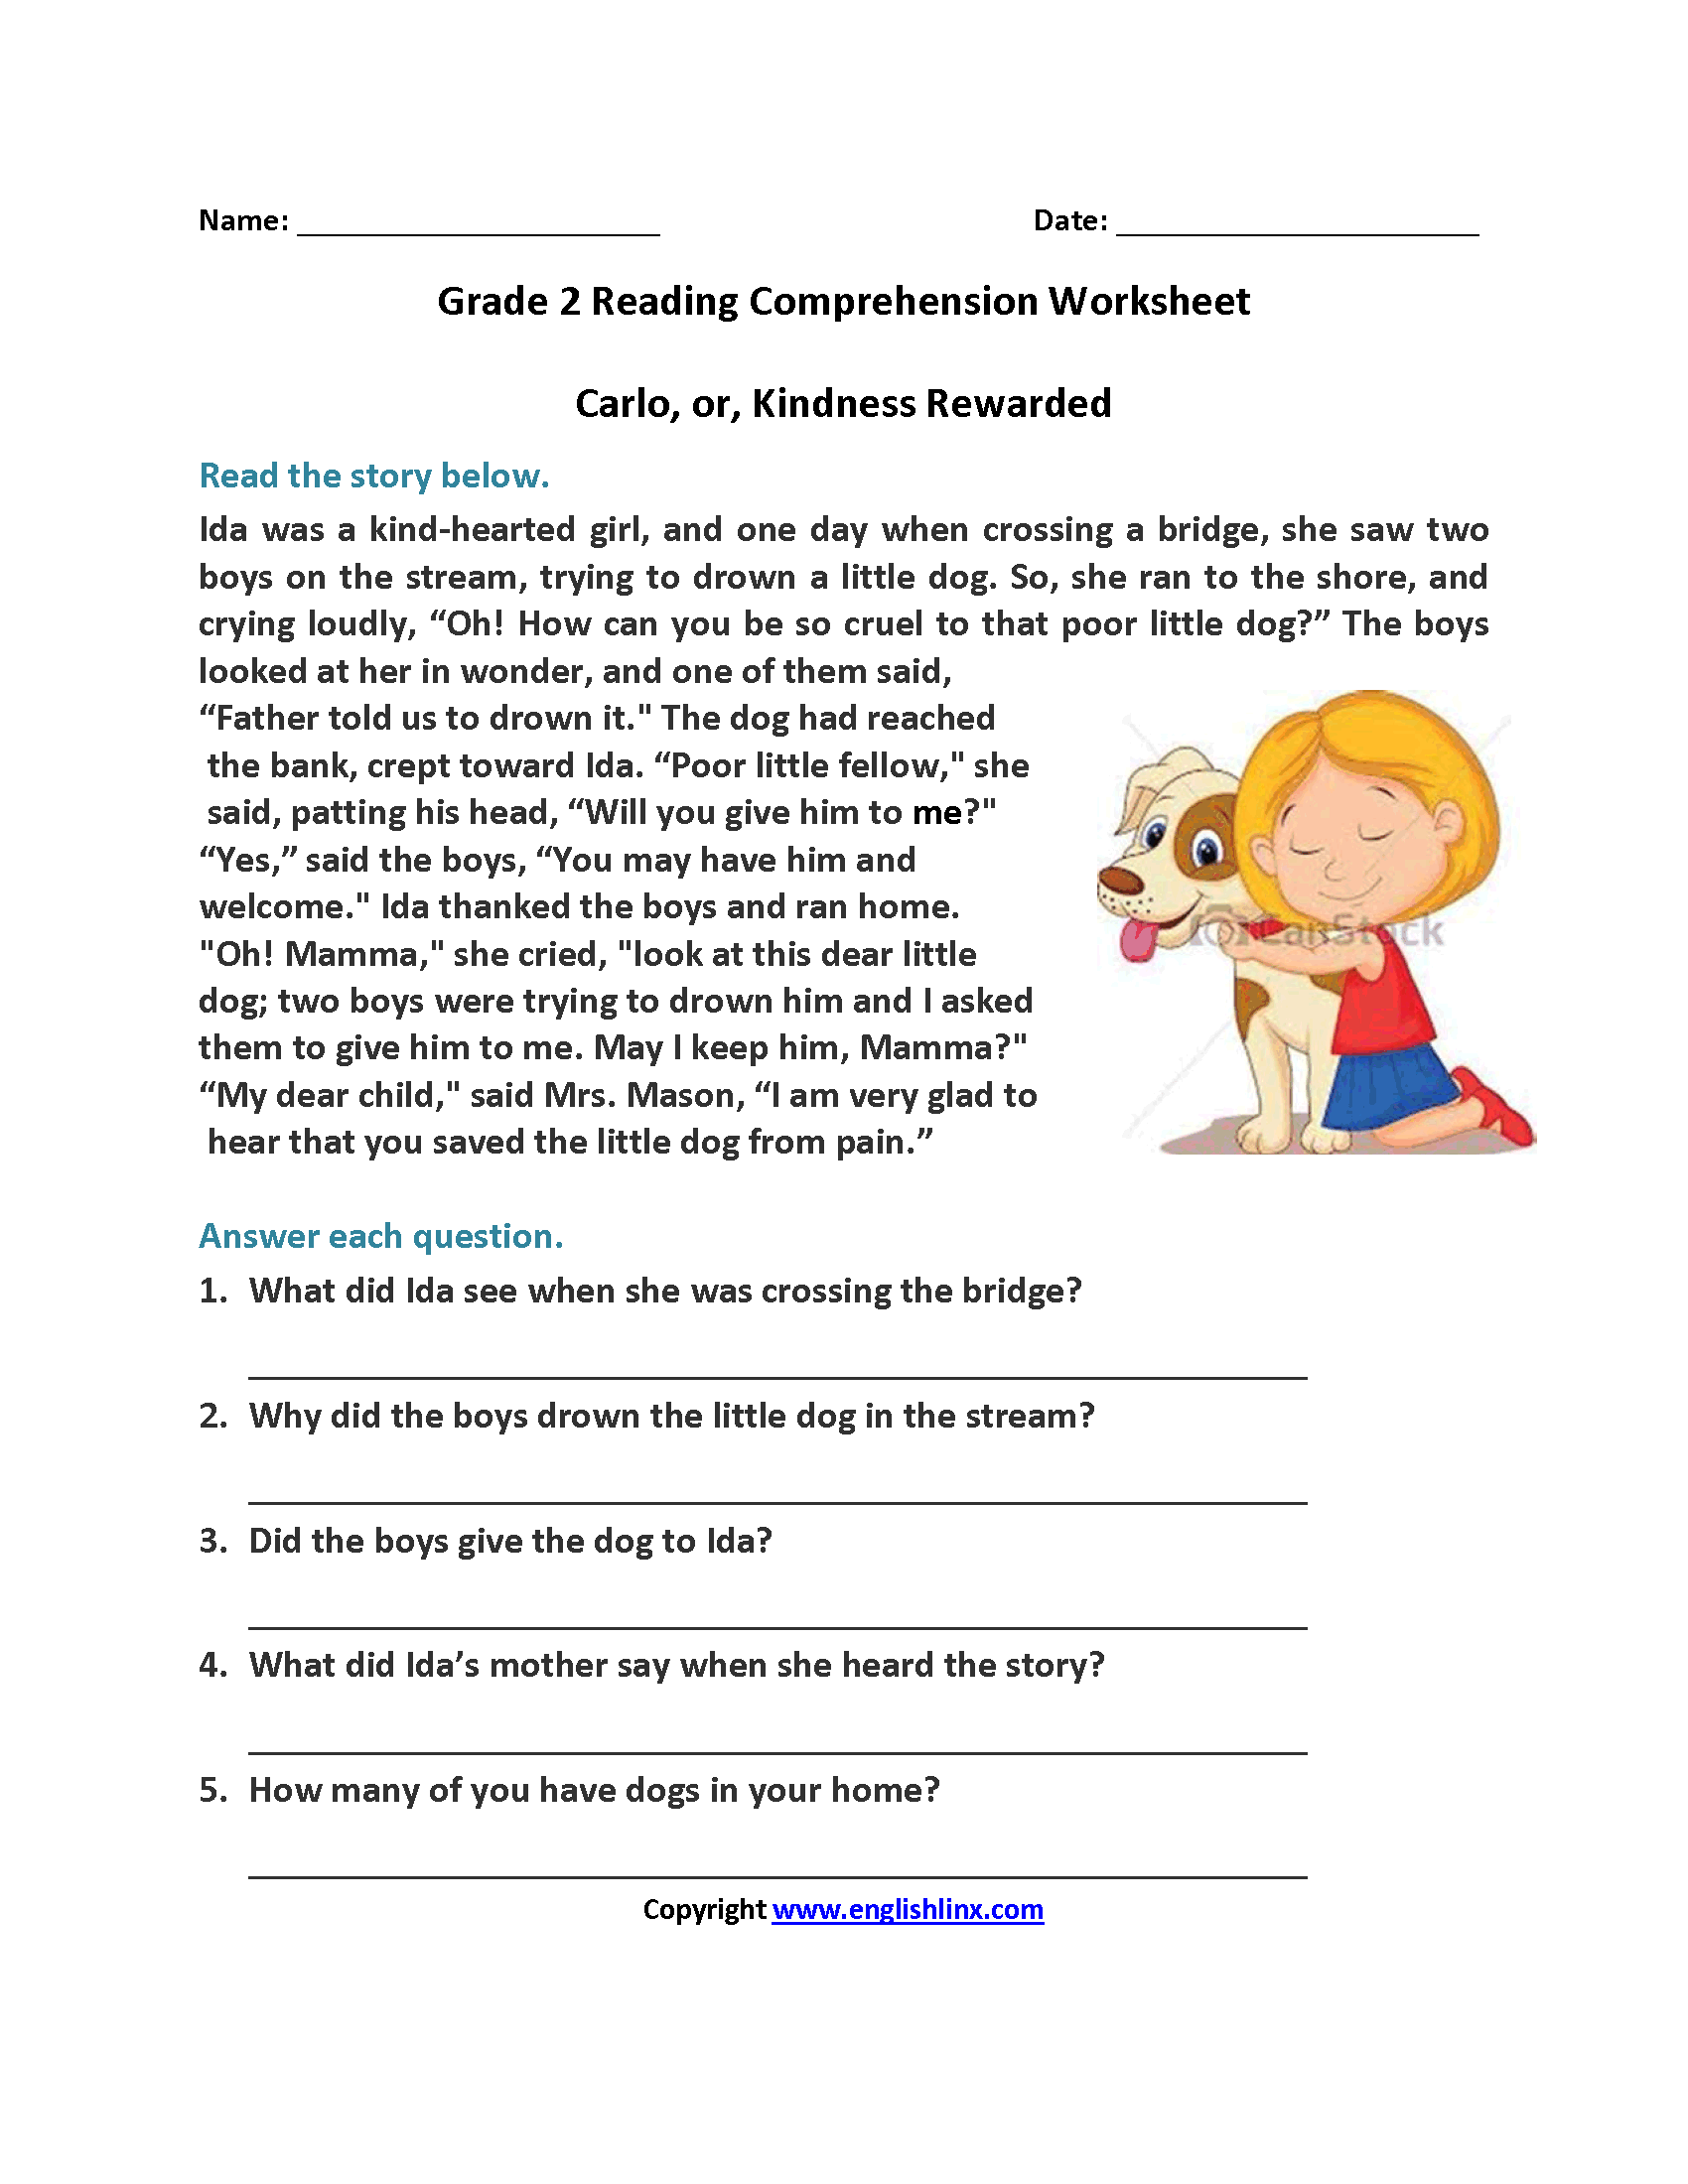 Worksheet Reading Comprehension Test For 2nd Grade carlo or kindness rewarded second grade reading worksheets worksheets